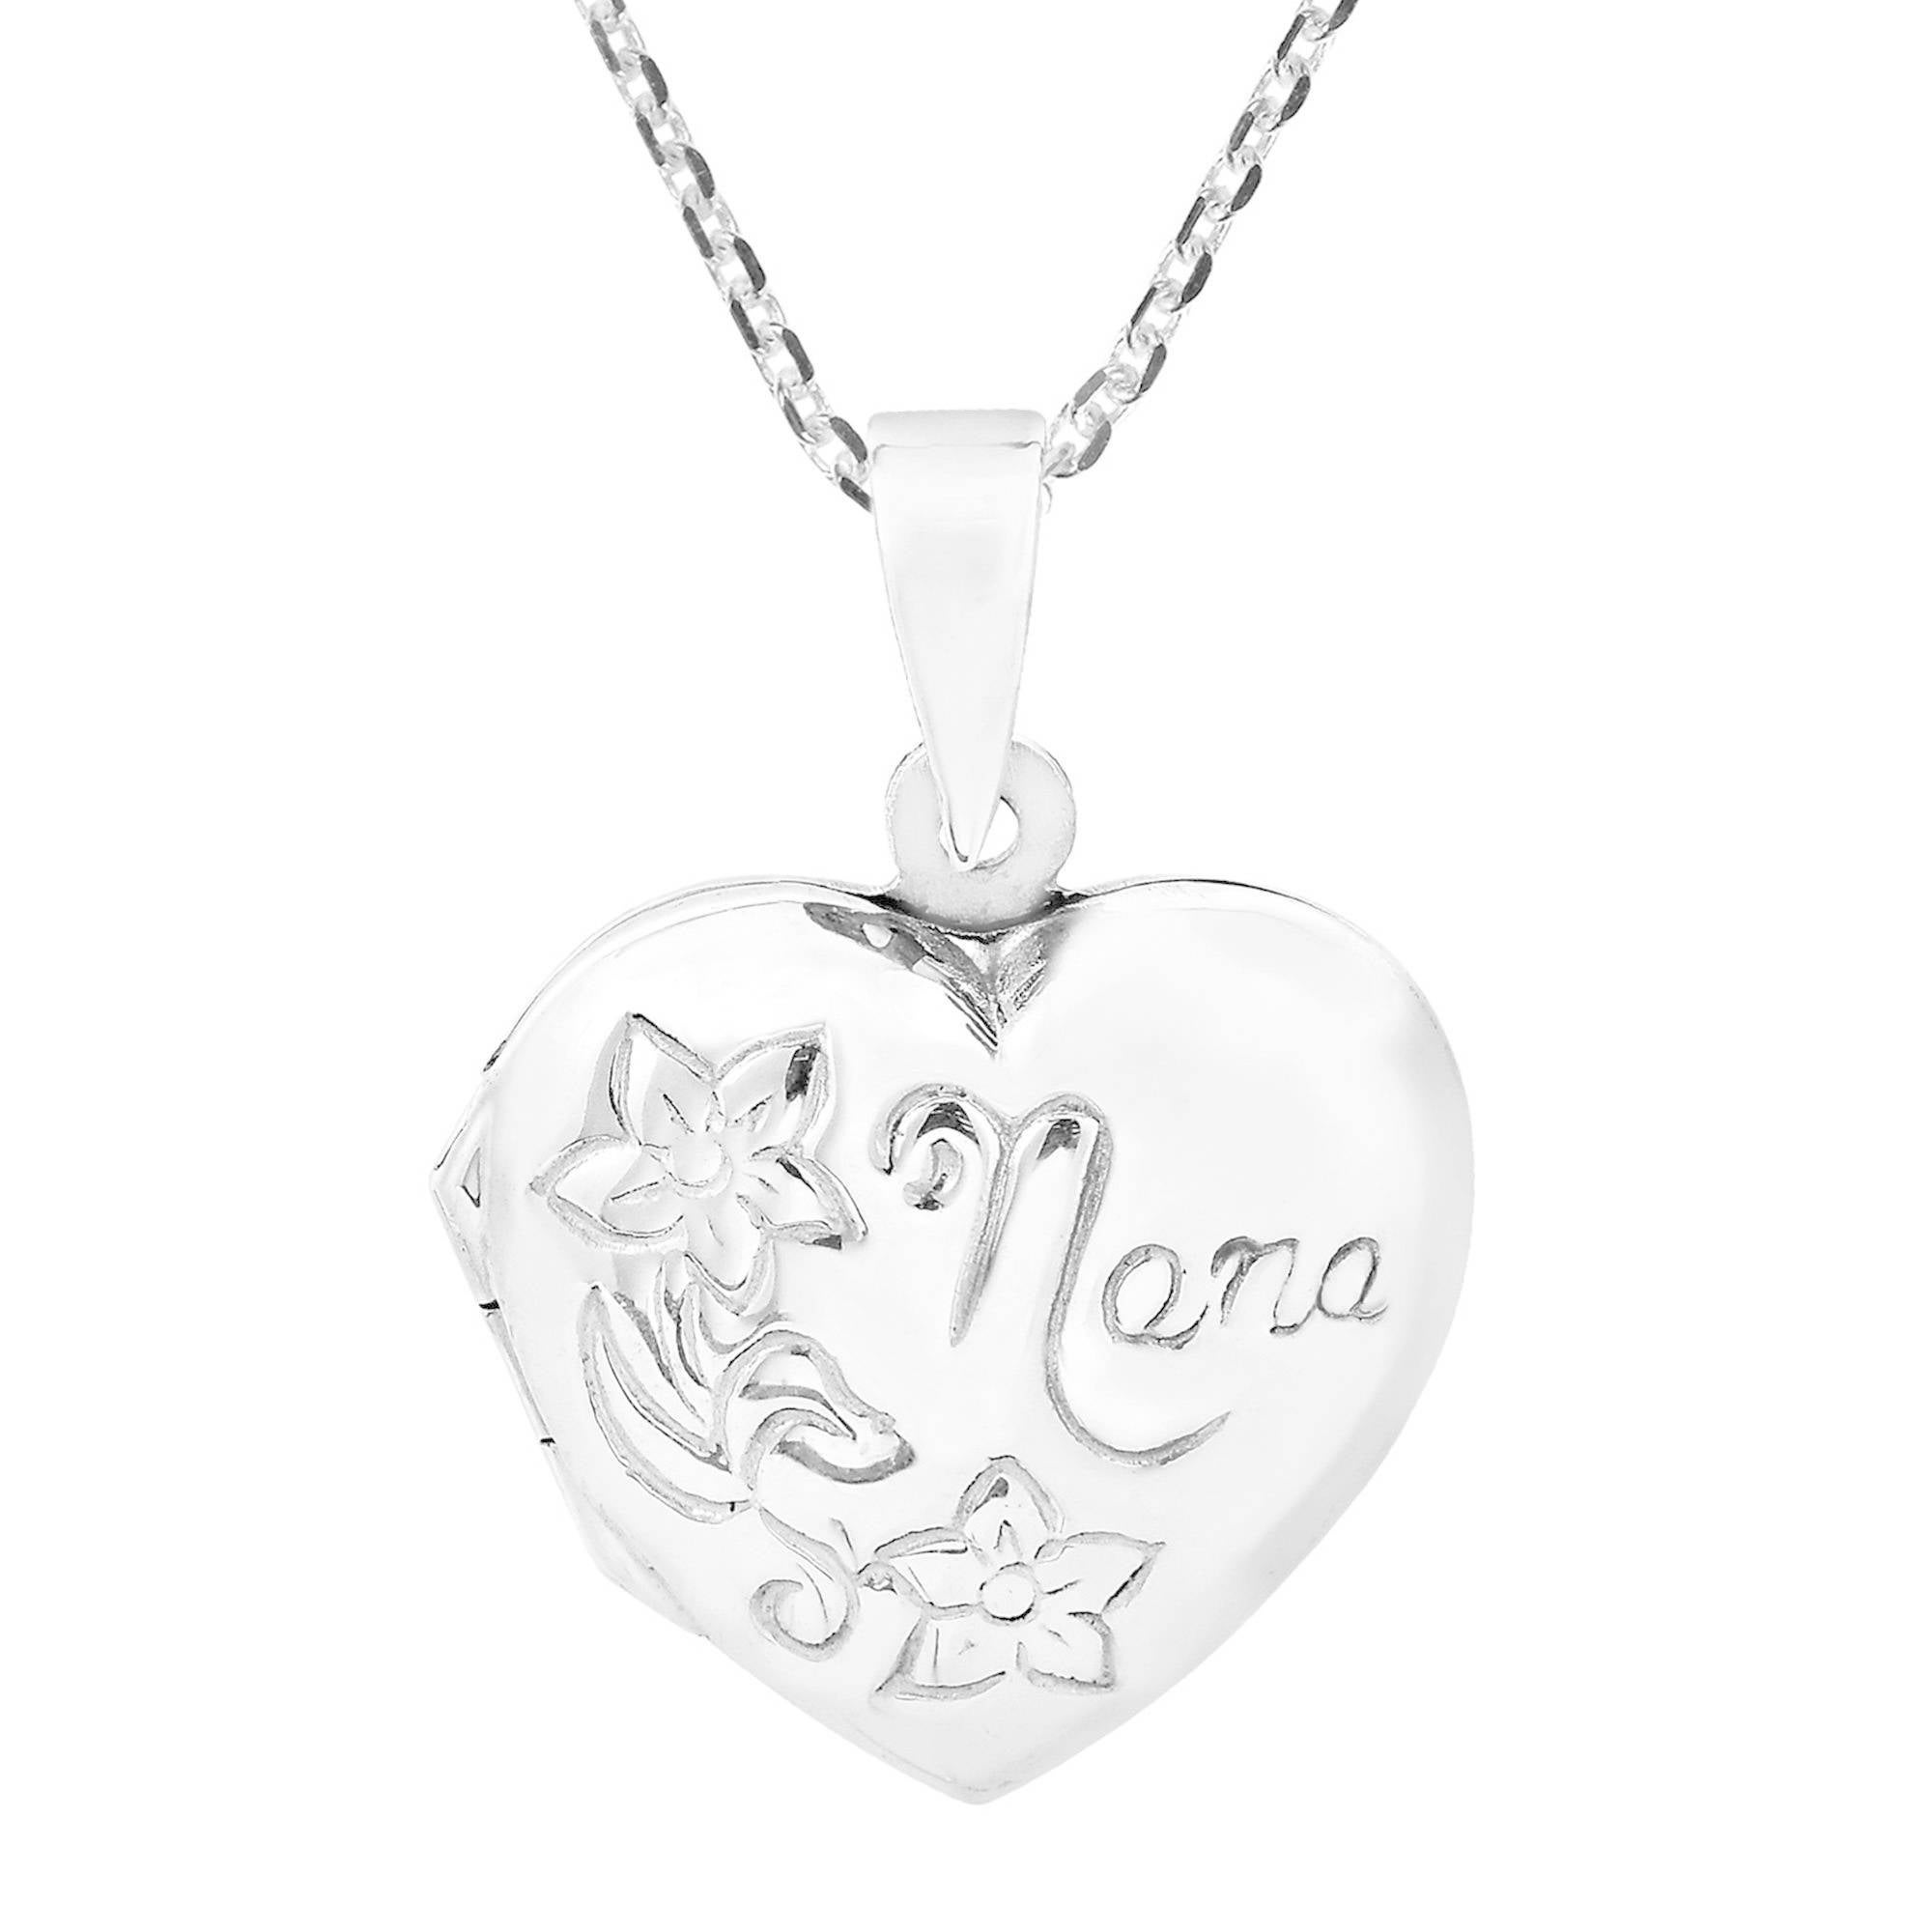 gift listing silver grandkids sterling necklace nana for fullxfull heart love grandma charm il dainty from